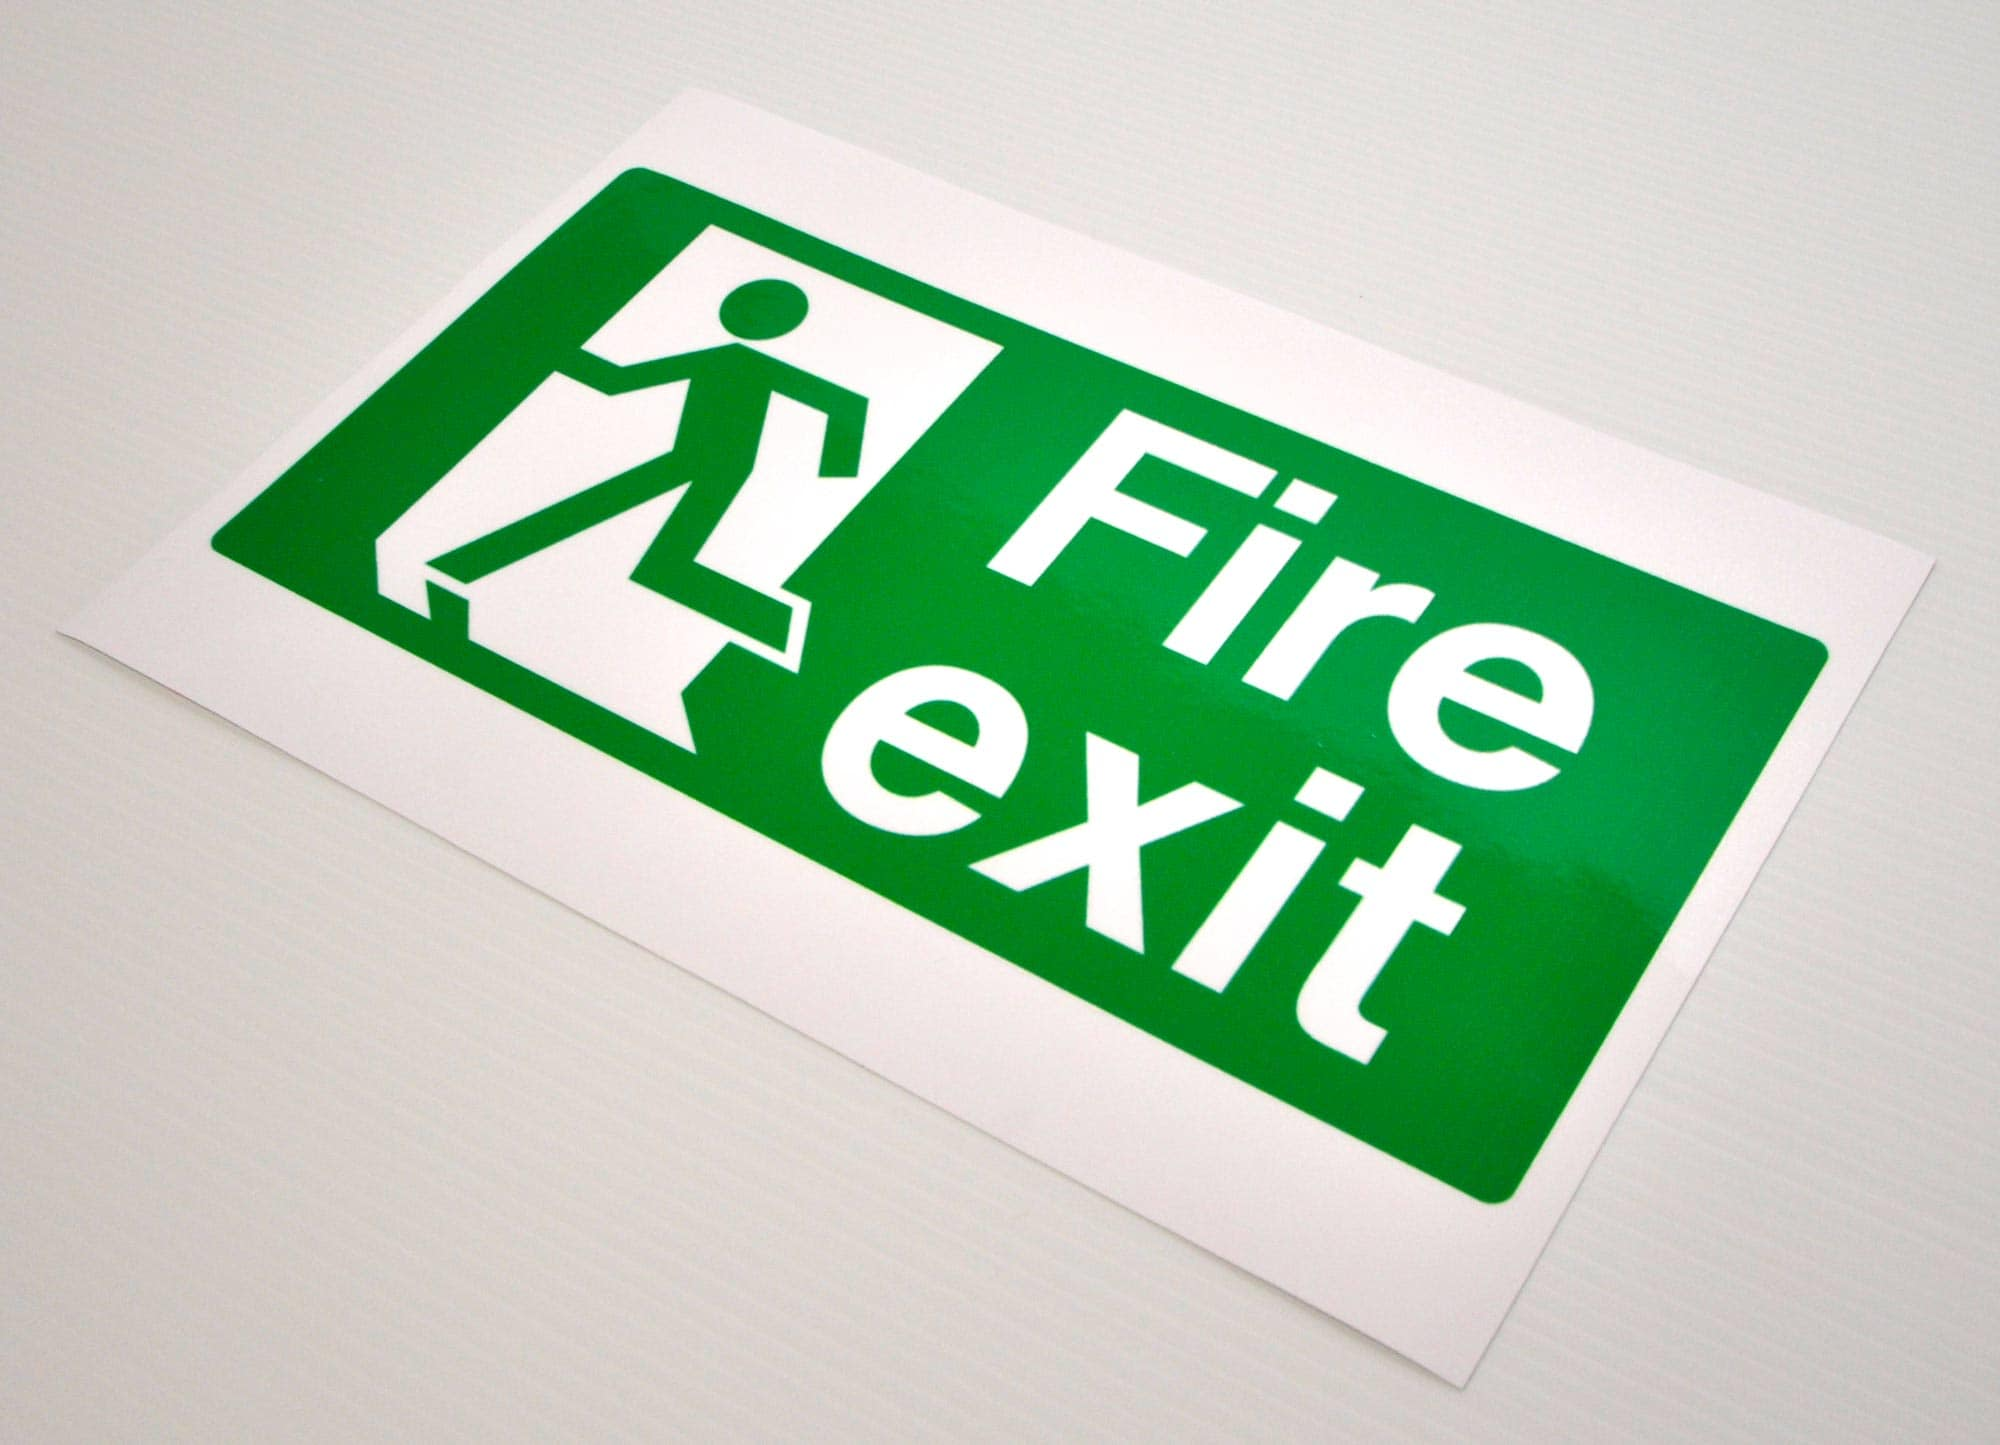 Digitally printed fire exit sign